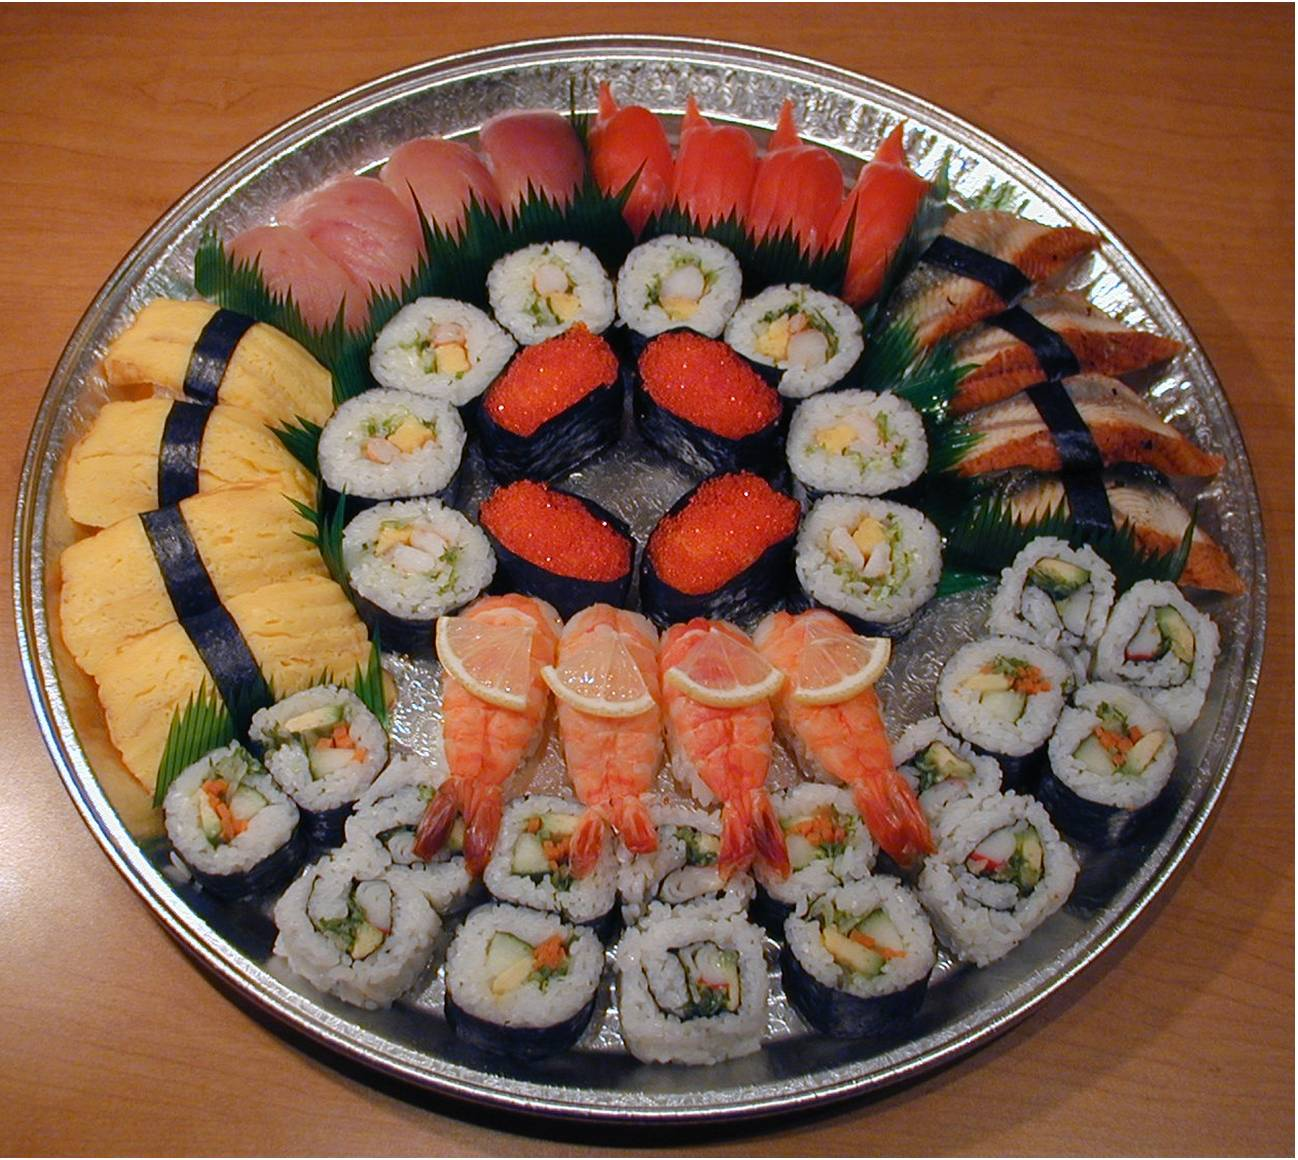 Costco party platters http sanbiki restaurant blogspot com 2010 11